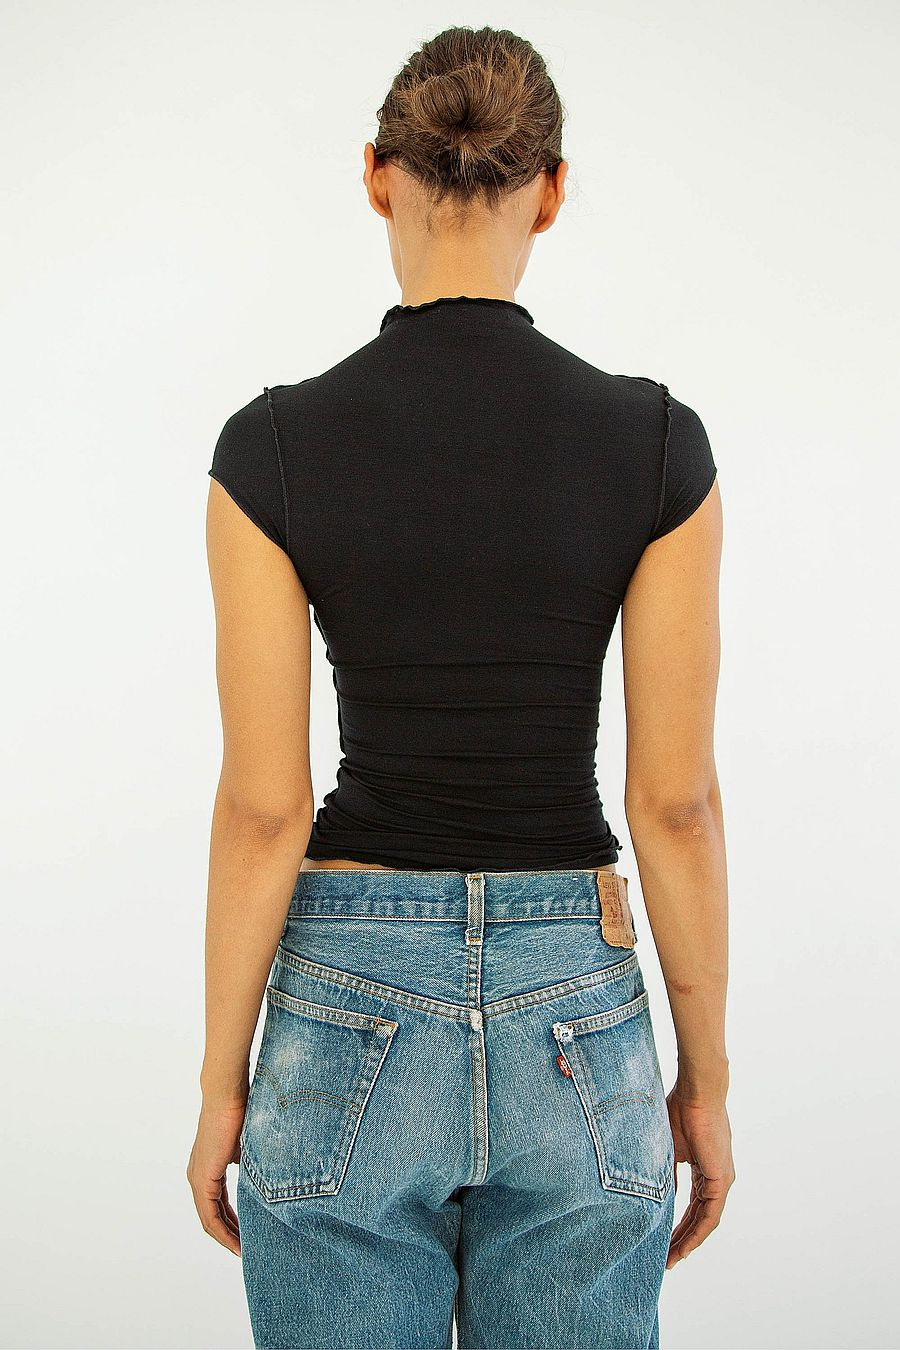 The Line by K Reese Mock Neck Top - Black